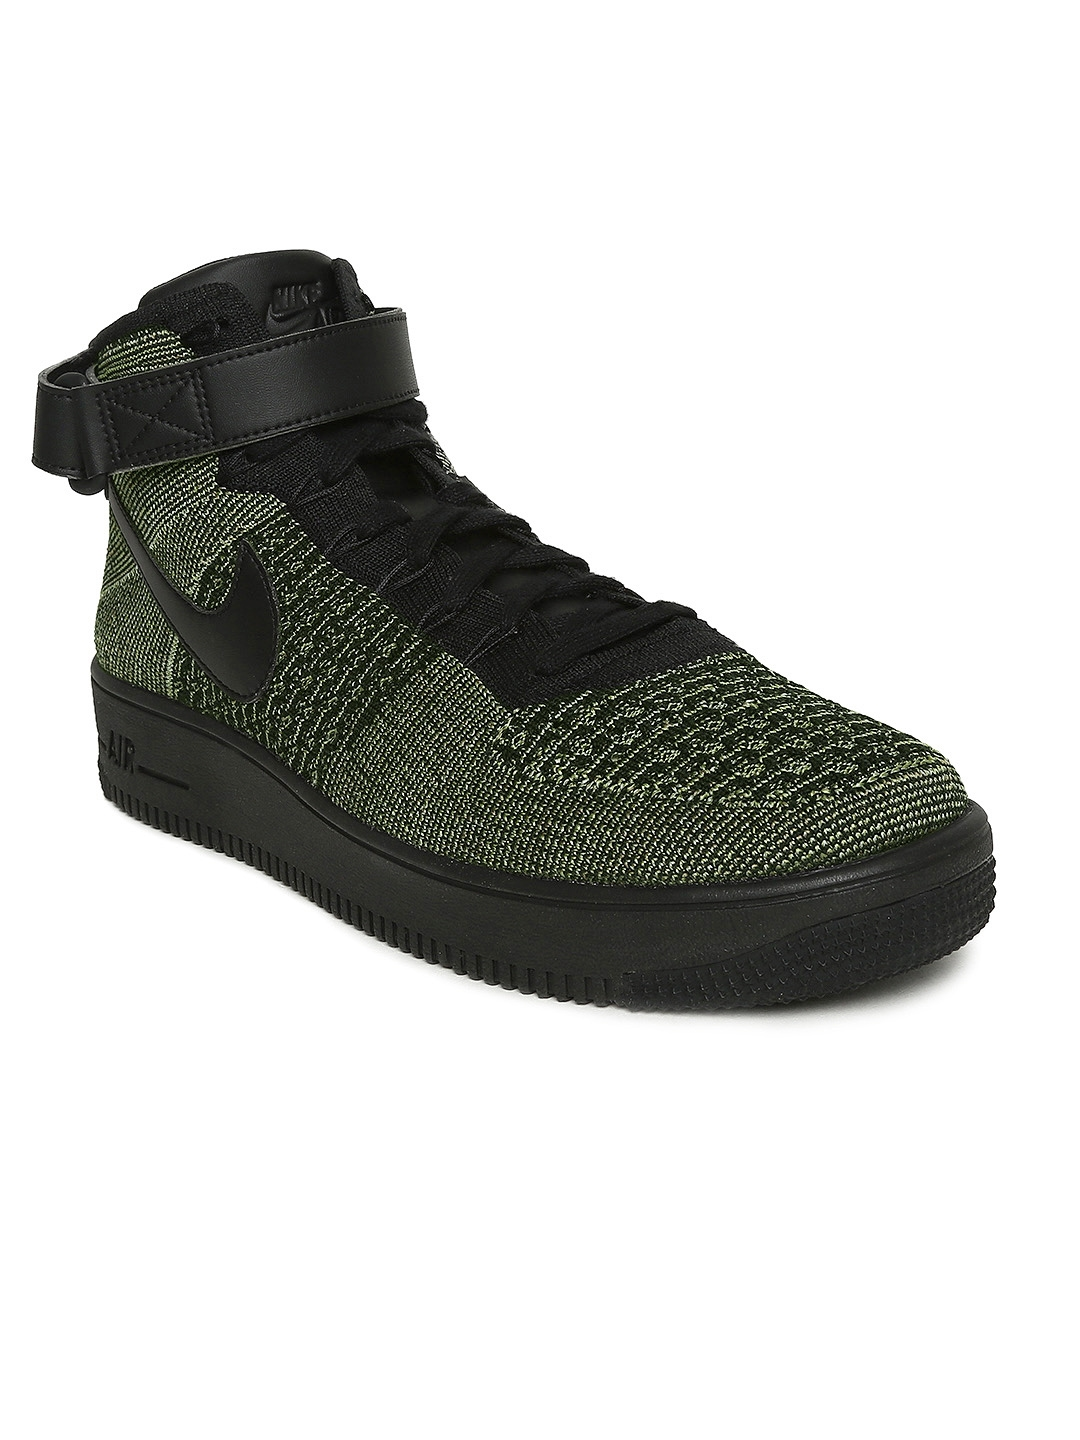 f6a77da1f132 Nike Men Green Printed Textile Mid-Top AF1 Ultra Flyknit Mid Sneakers